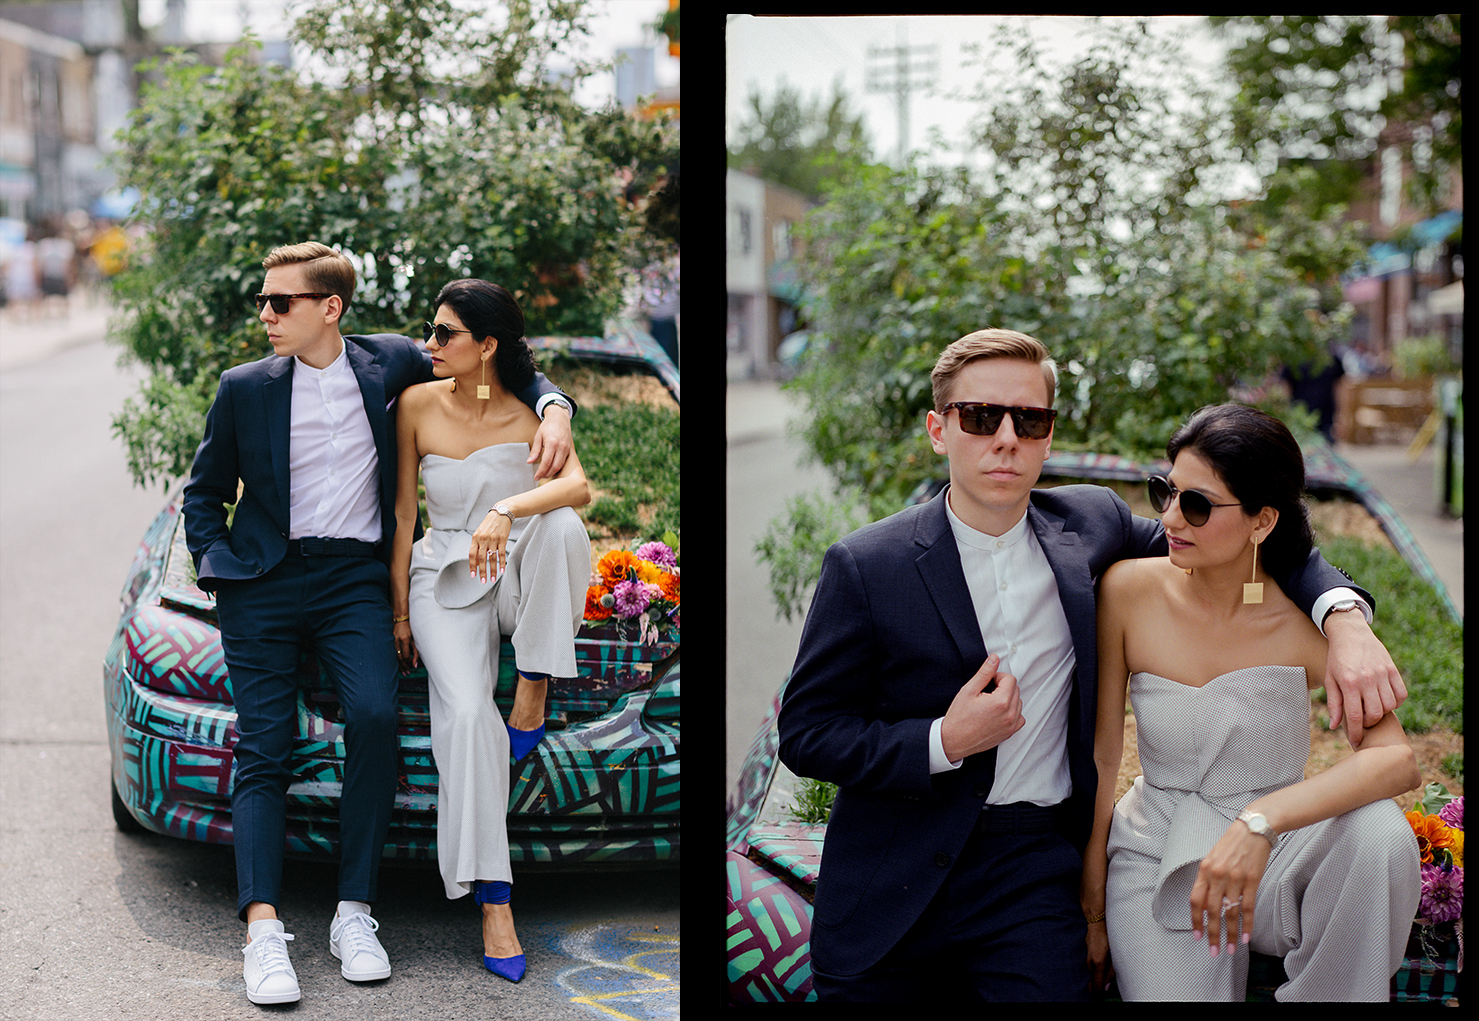 9-Best-Documentary-Wedding-Photographers-Toronto-Analog-Film-Photographer-Downtown-Kensington-Market-City-Bride-Bridal-Jumpsuit-Style-Inspiration-Bride-and-Groom-Cool-vibes-candid-editorial.jpg